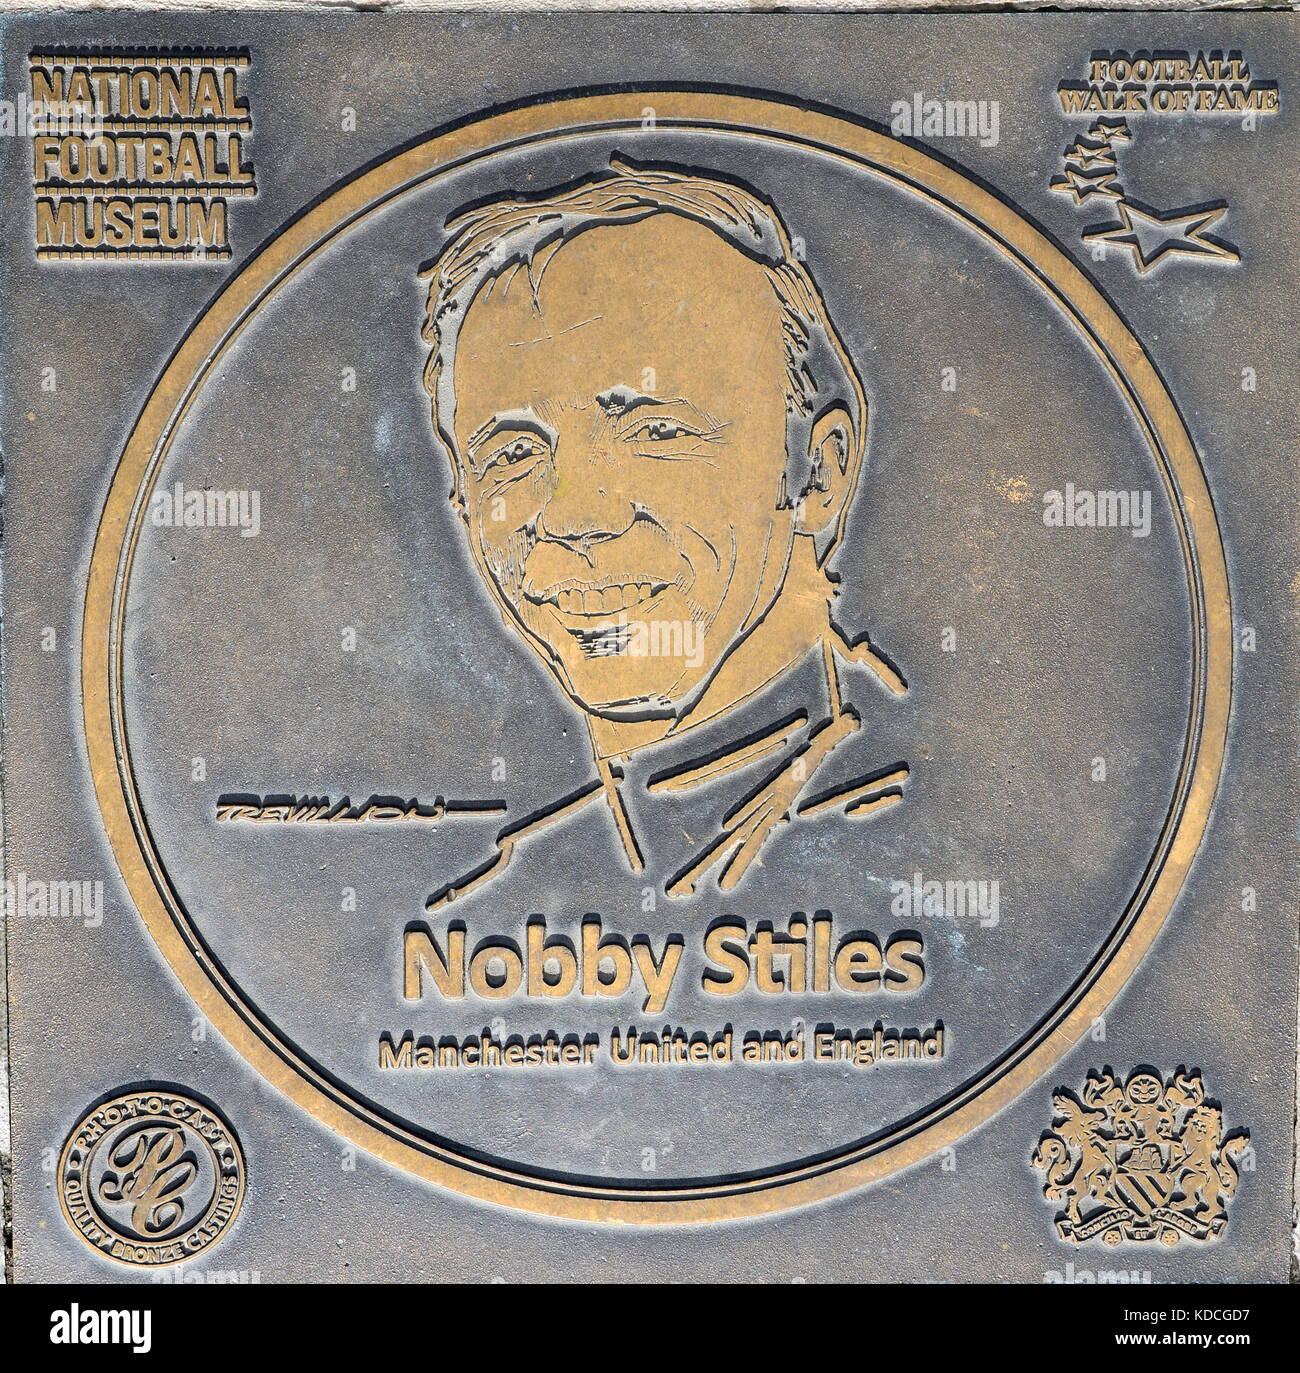 Nobby Stiles plaque at the National Football Museum - Stock Image